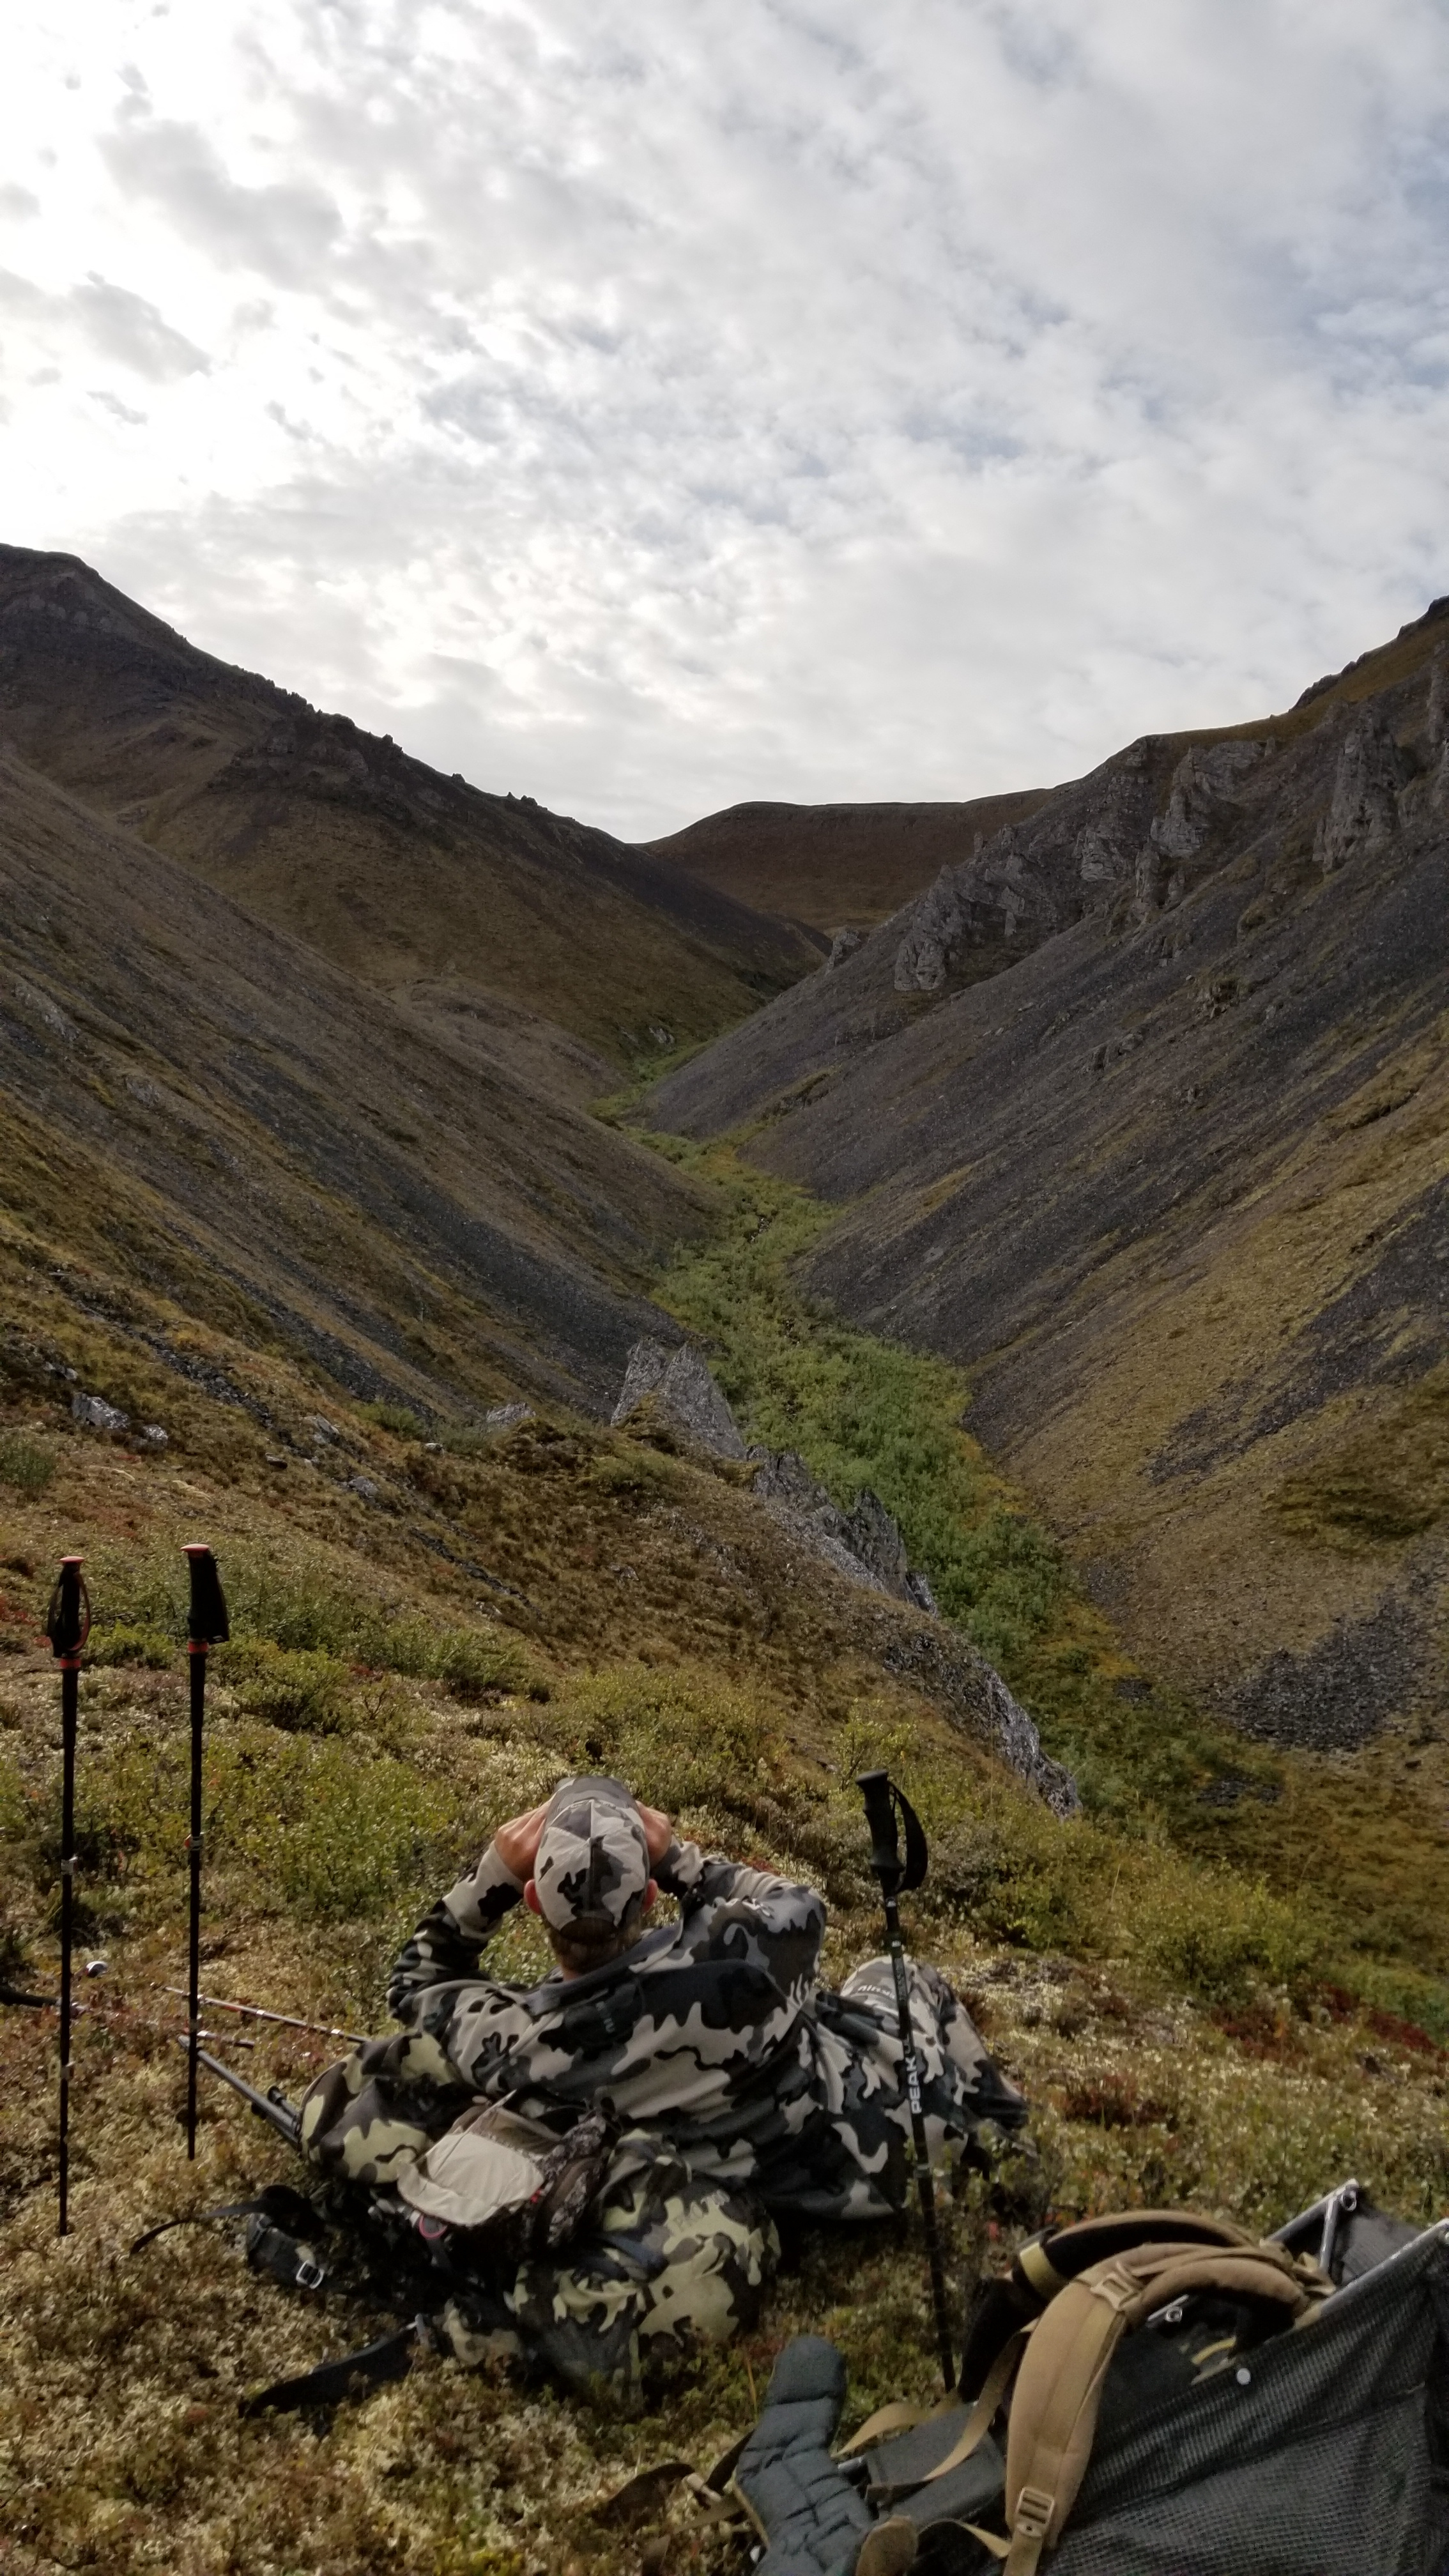 Glassing for Dall Sheep in the Brooks Range